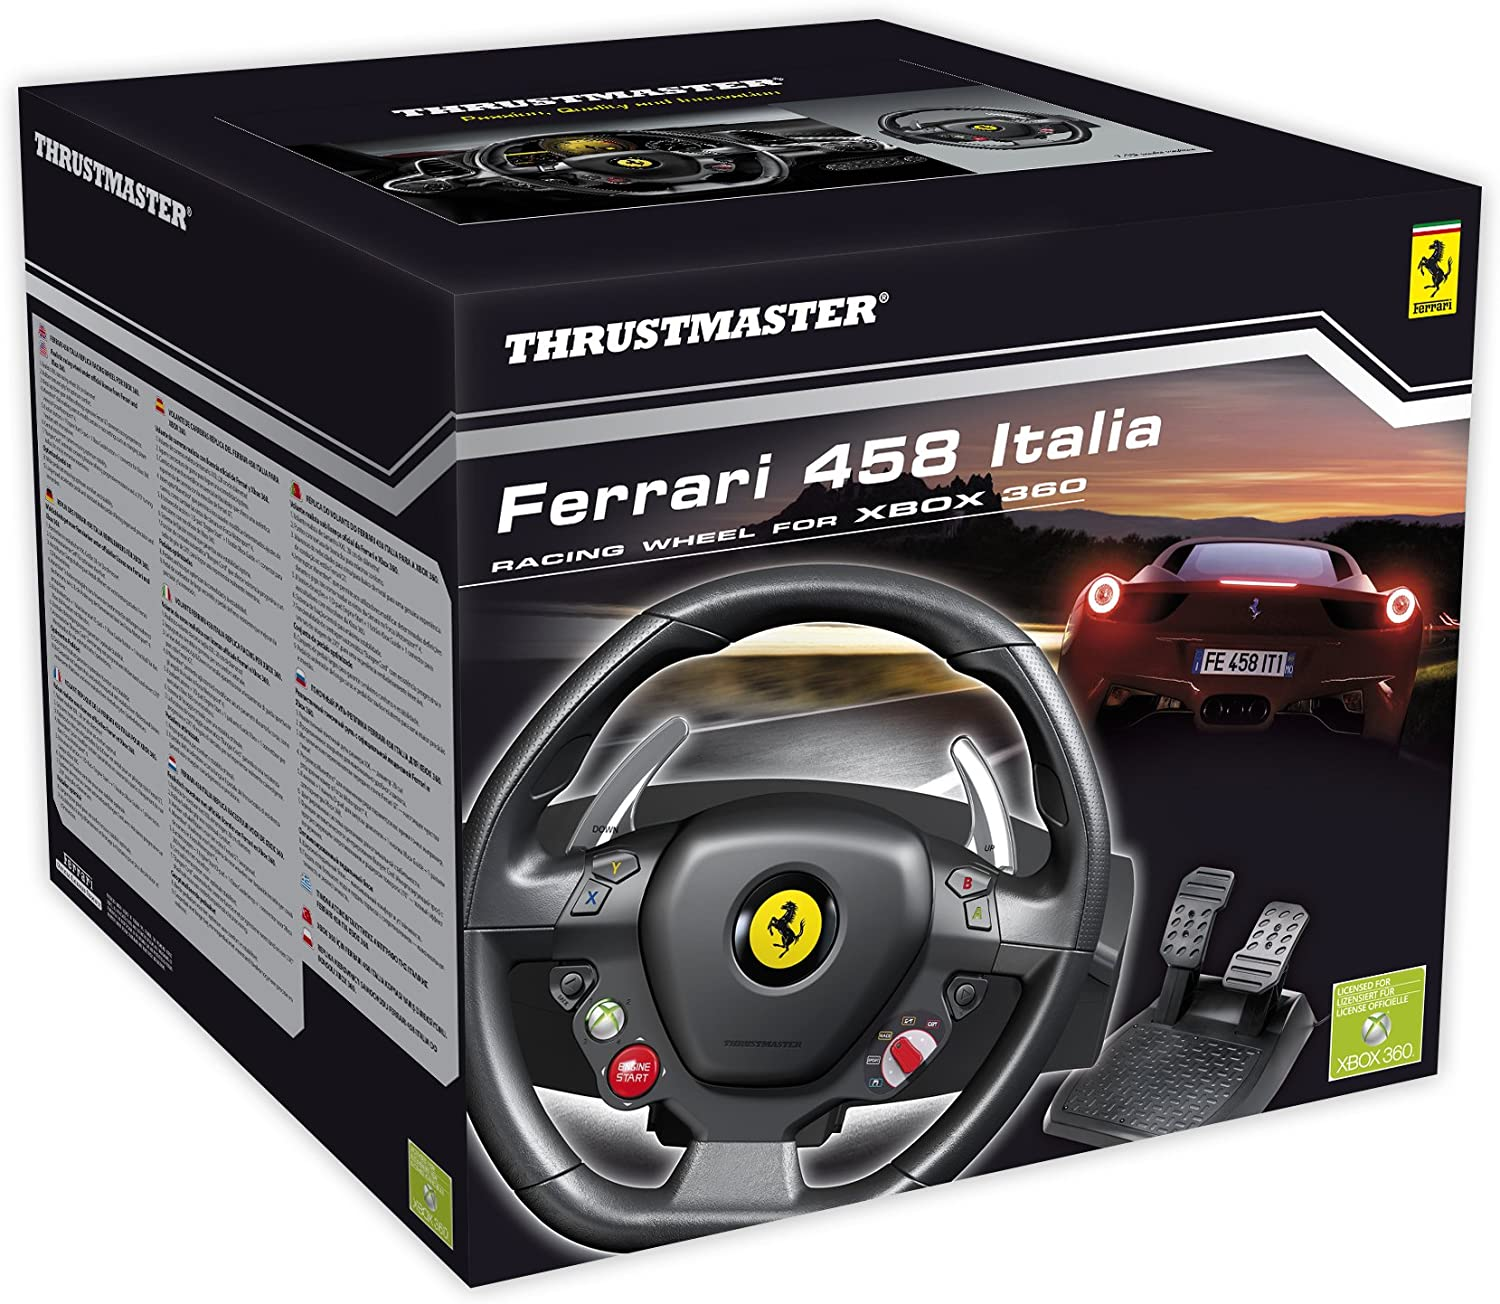 81Q9iIUT dL._AC_SL1500_ amazon com thrustmaster ferrari 458 racing wheel for xbox 360 Tremolo Pedal Diagram Basic at creativeand.co